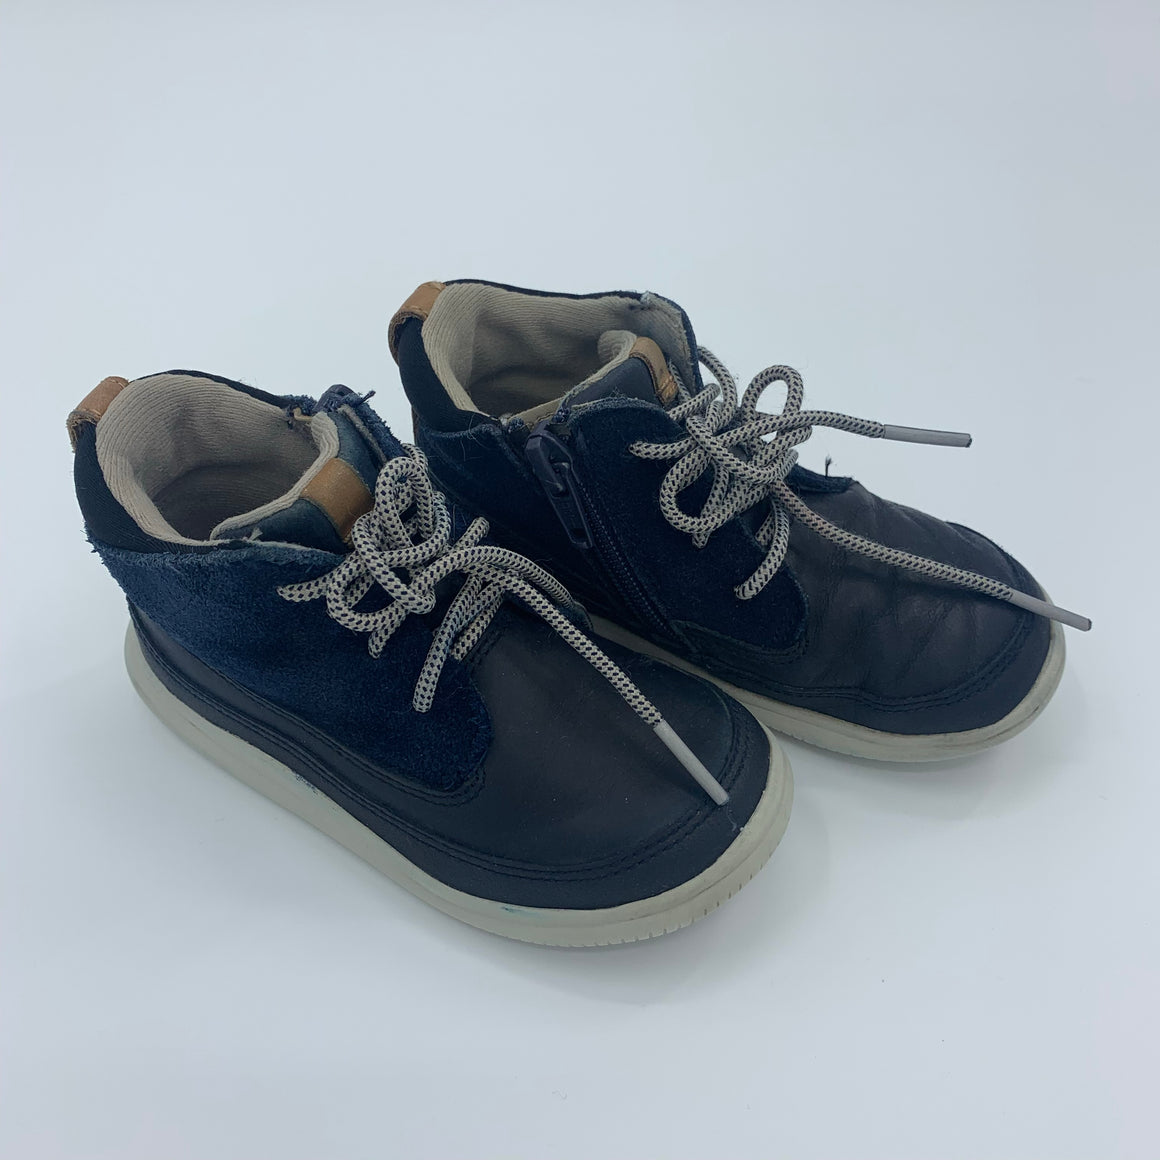 Hardly Worn Clarks navy high tops size UK 6.5F